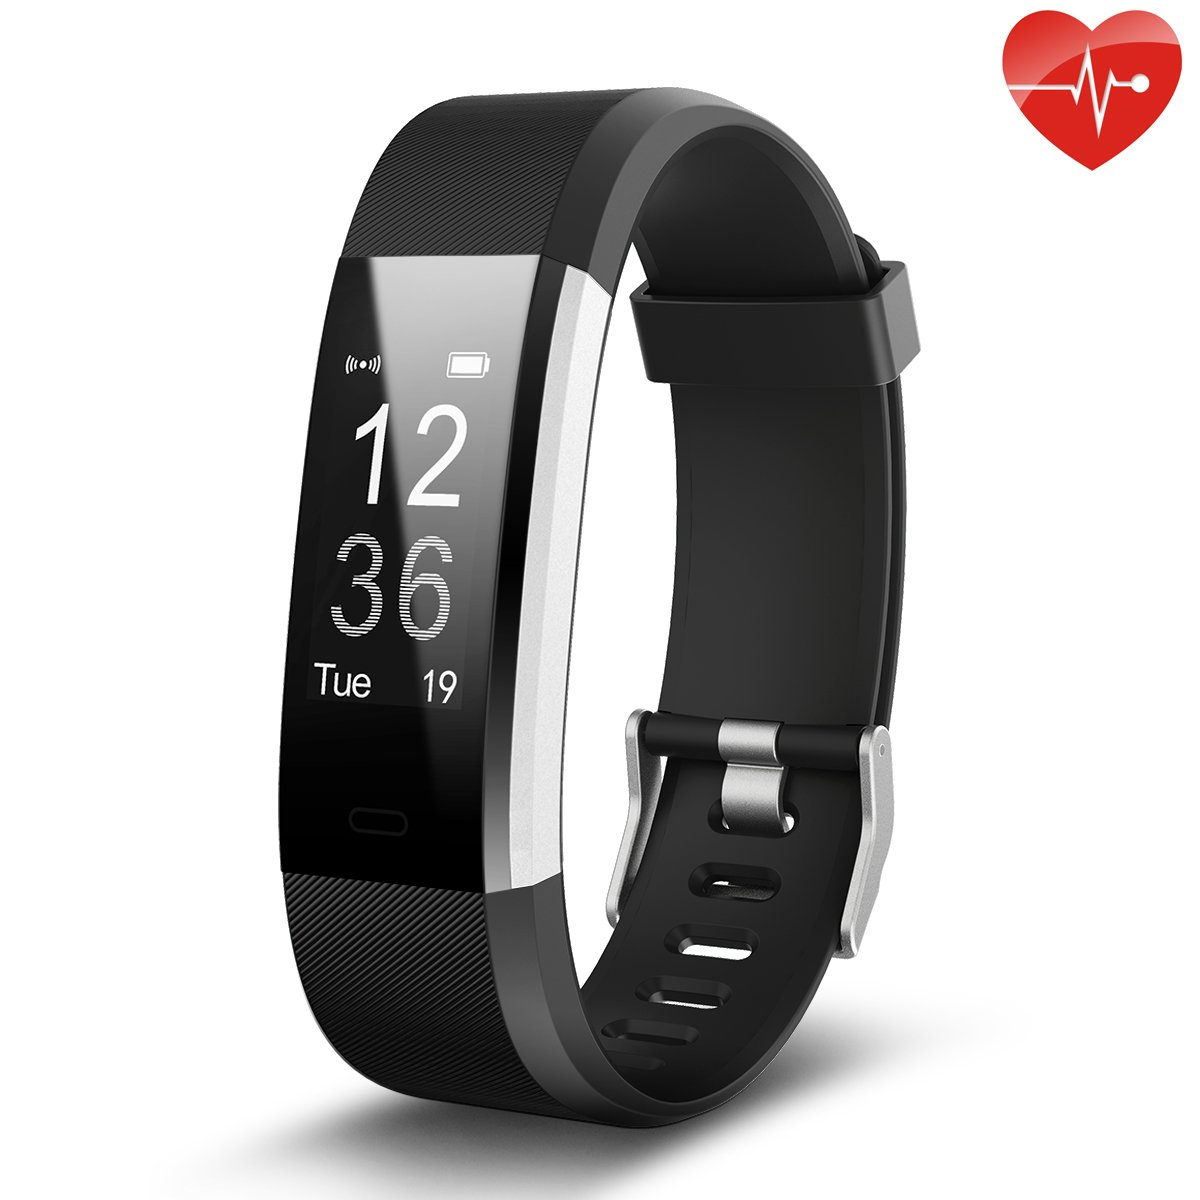 Juboury Fitness Tracker, Slim Heart Rate Smart Bracelet Wearable Pedometer Touch Screen Activity Tracker Fitness Watch for Android and IOS Smart Phones (Black)